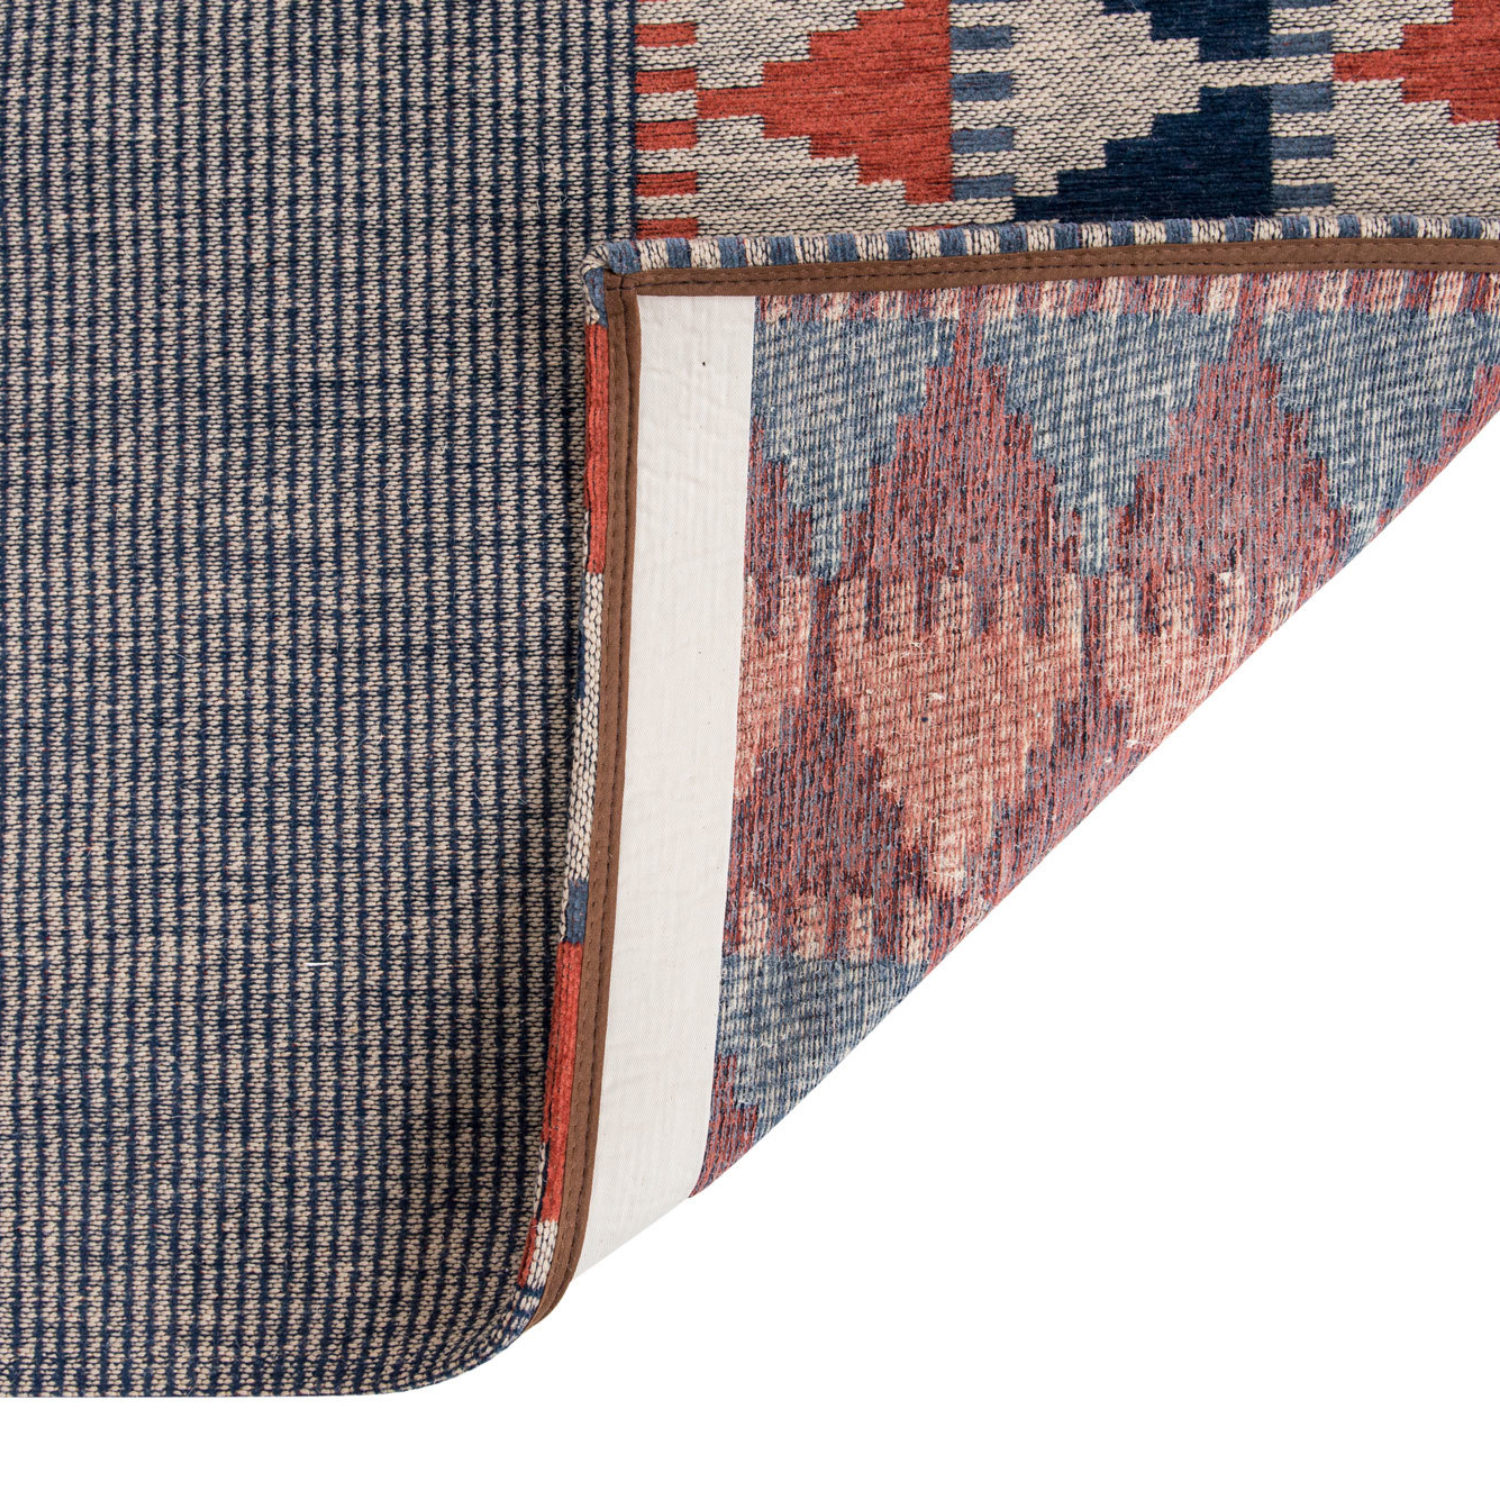 A contemporary geometric rug inspired by tradionnal folk patterns